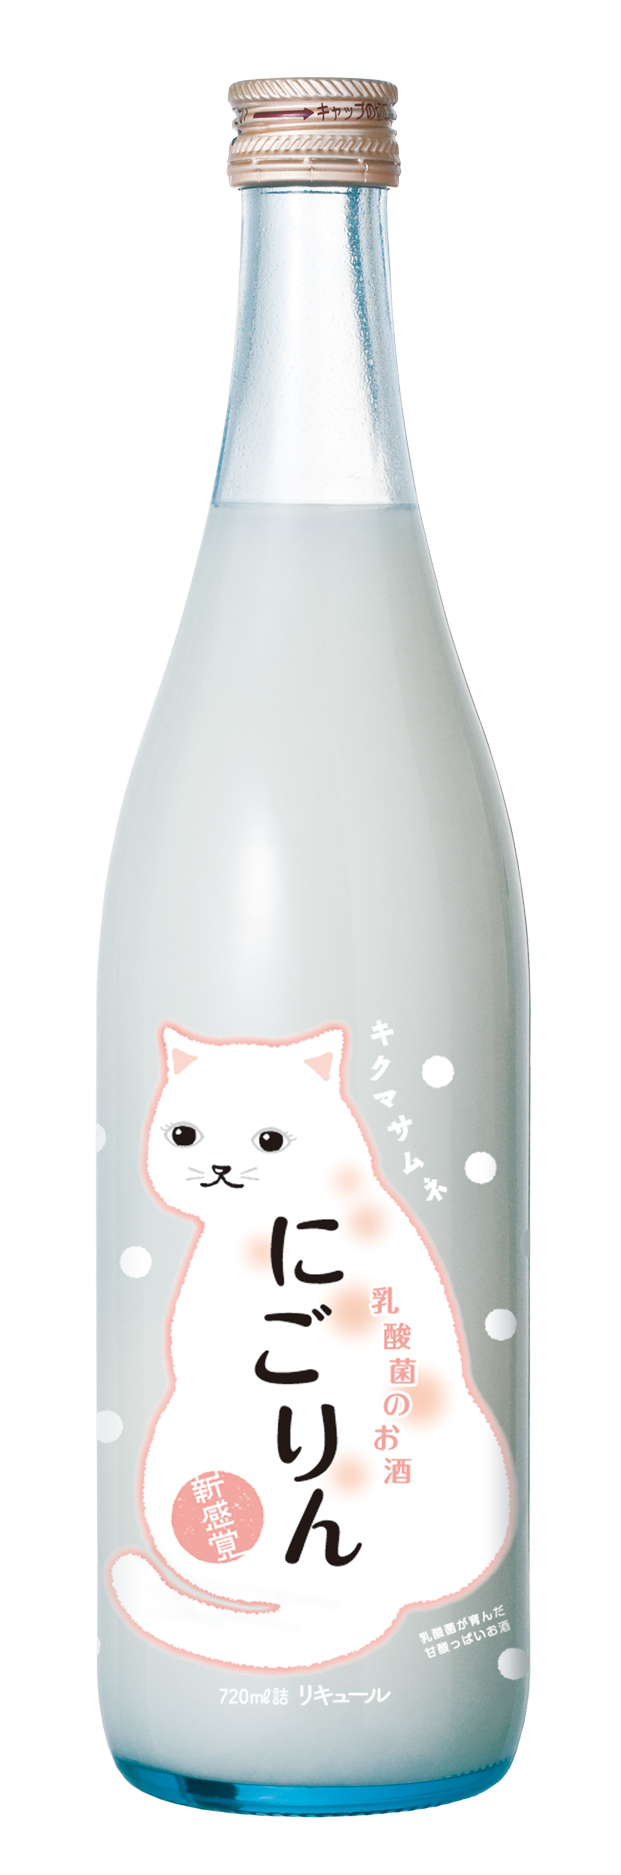 Nigorin 乳酸菌のお酒 にごりんサワー.  They say a cat has nine lives and this packaging sure does too.